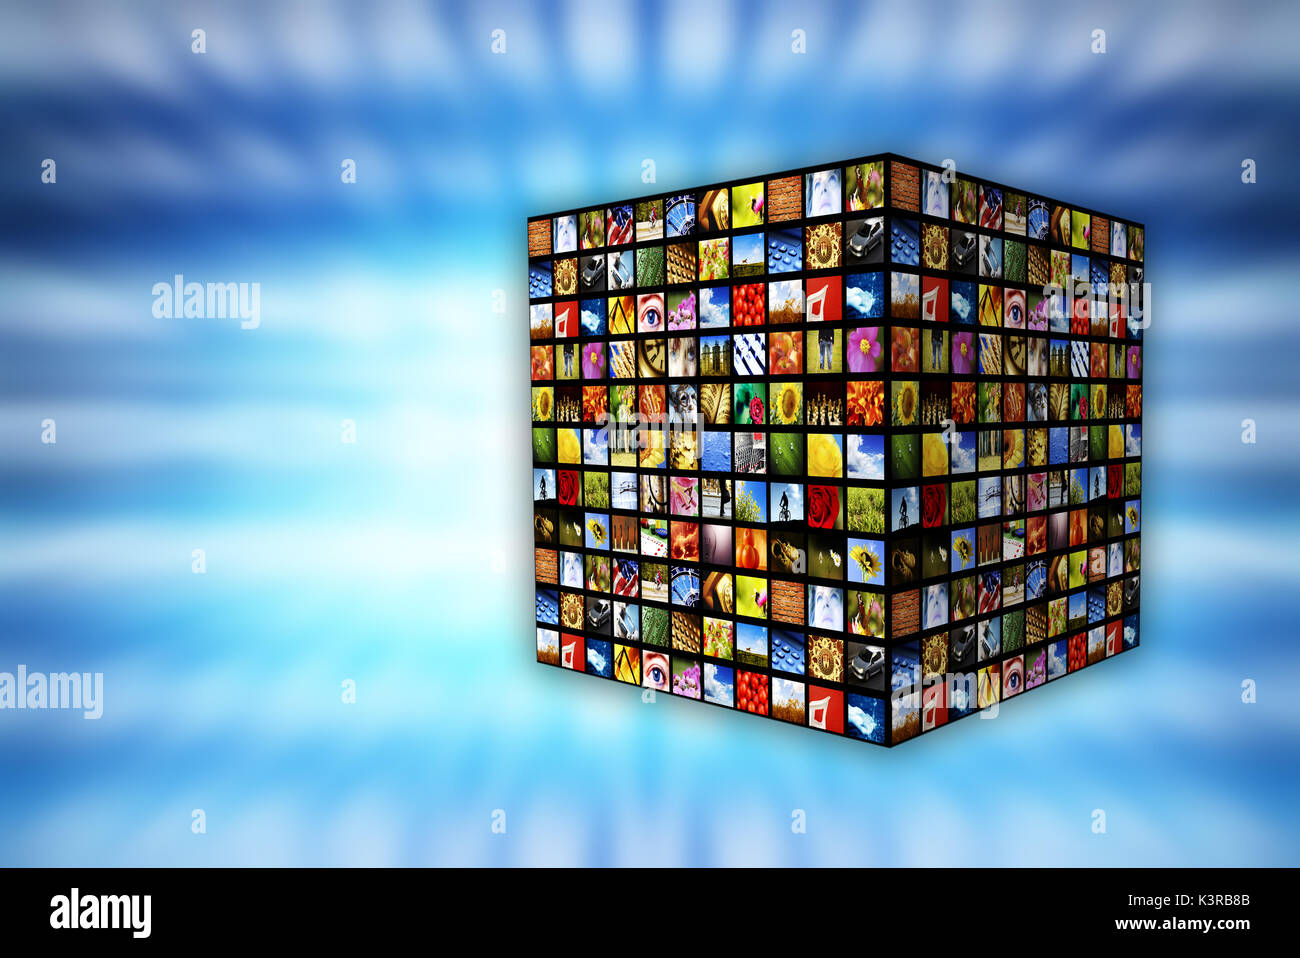 cube with many screens, internet and media concept - Stock Image